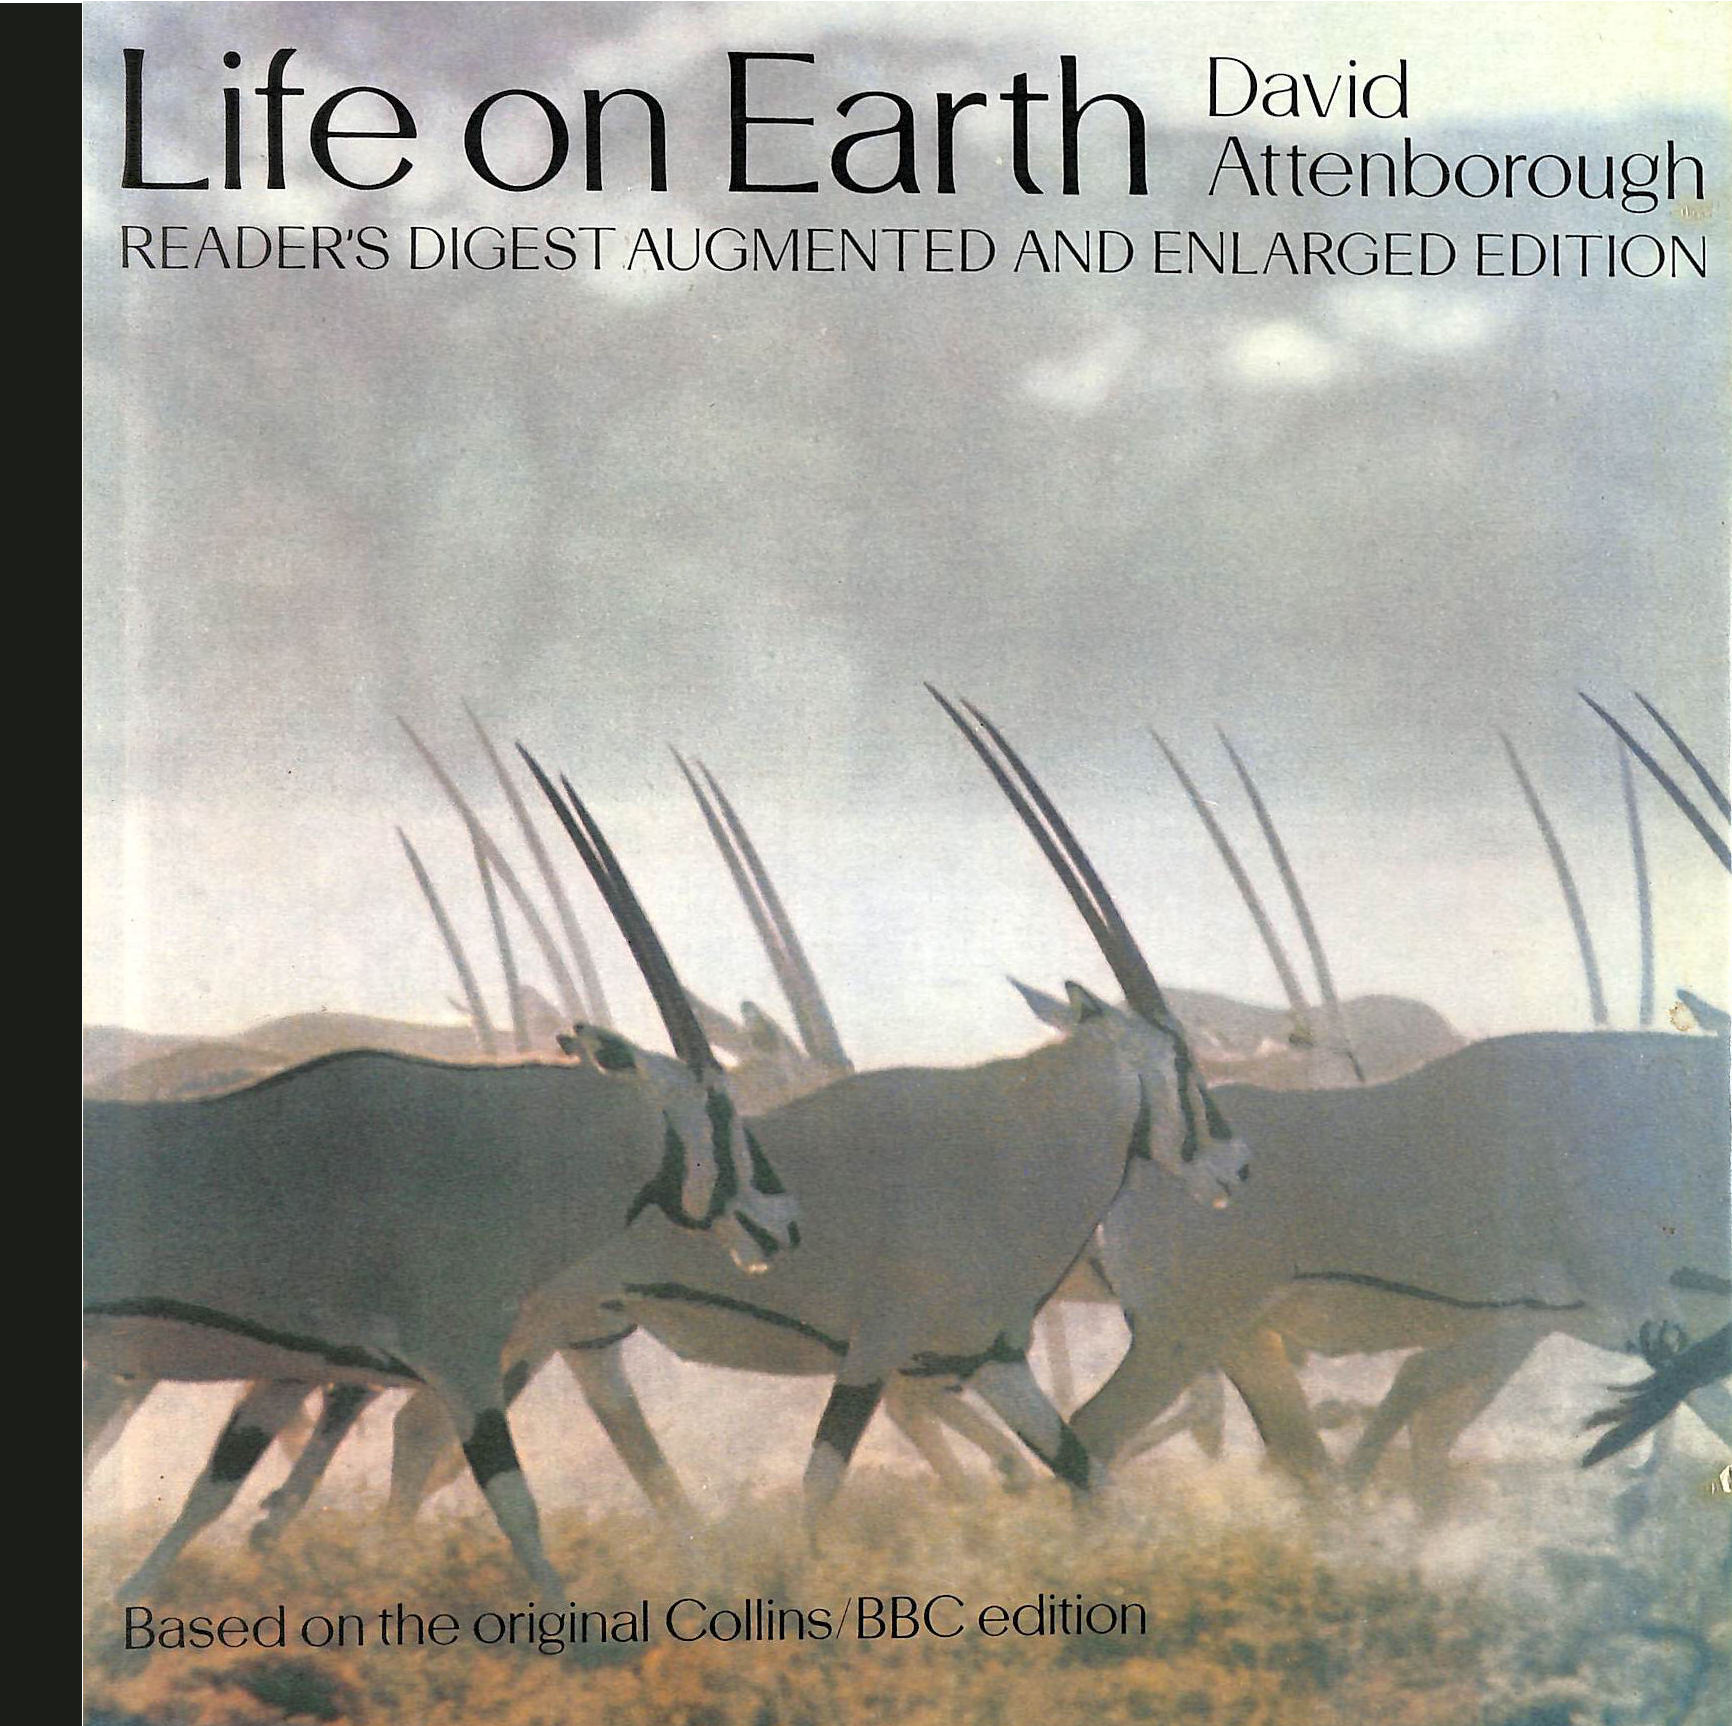 Image for Life on Earth. Reader's Digest augmented and enlarged Edition. Based on the original Collins/BBC edition.